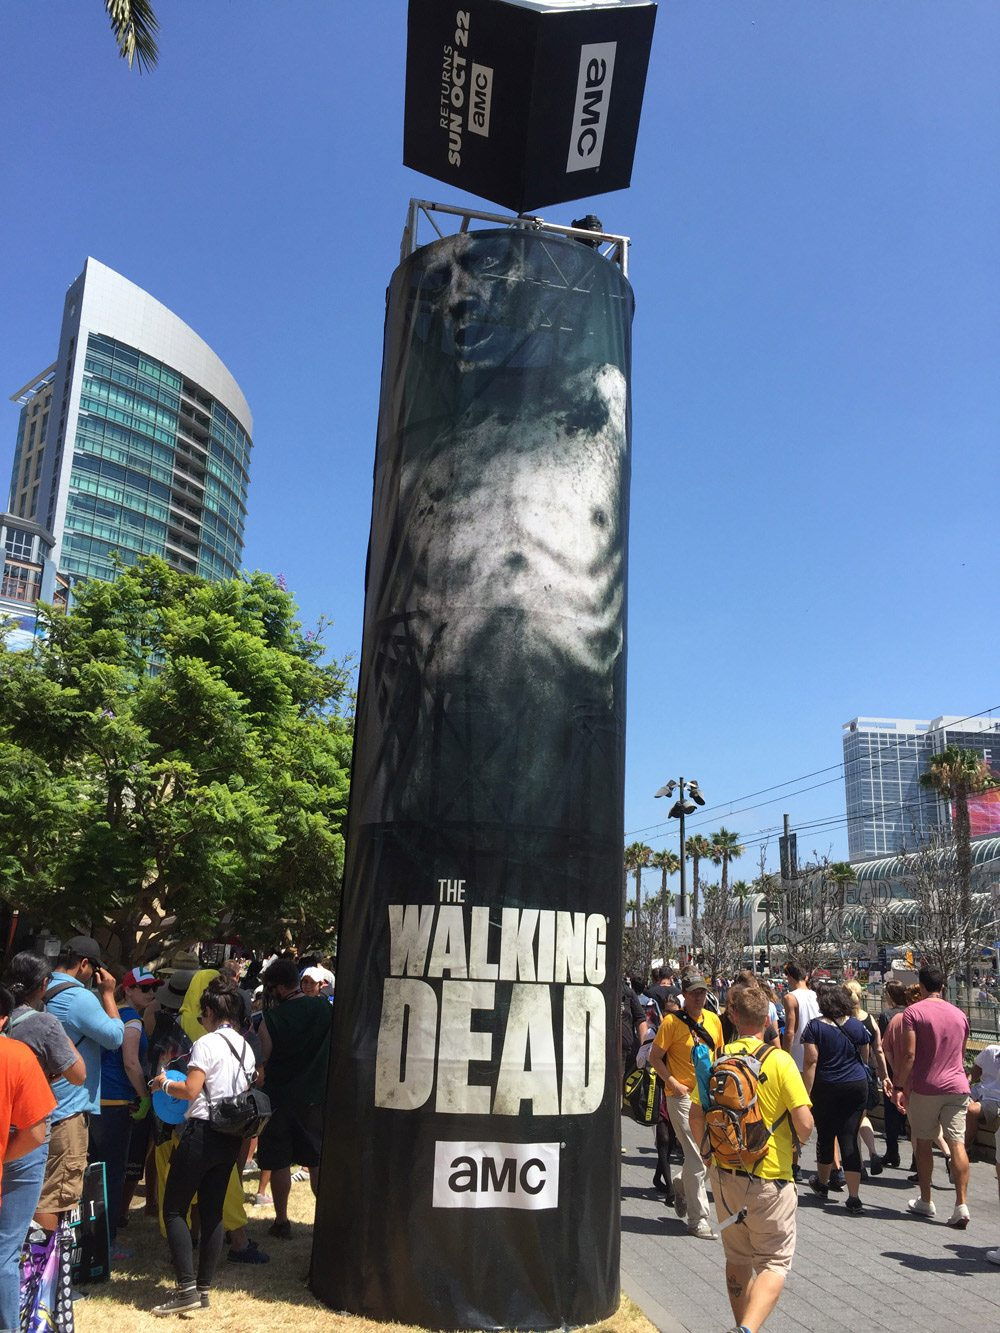 twd dq 14 - #SDCC17: We Took on The Walking Dead Encounter and Lived to Tell About It!